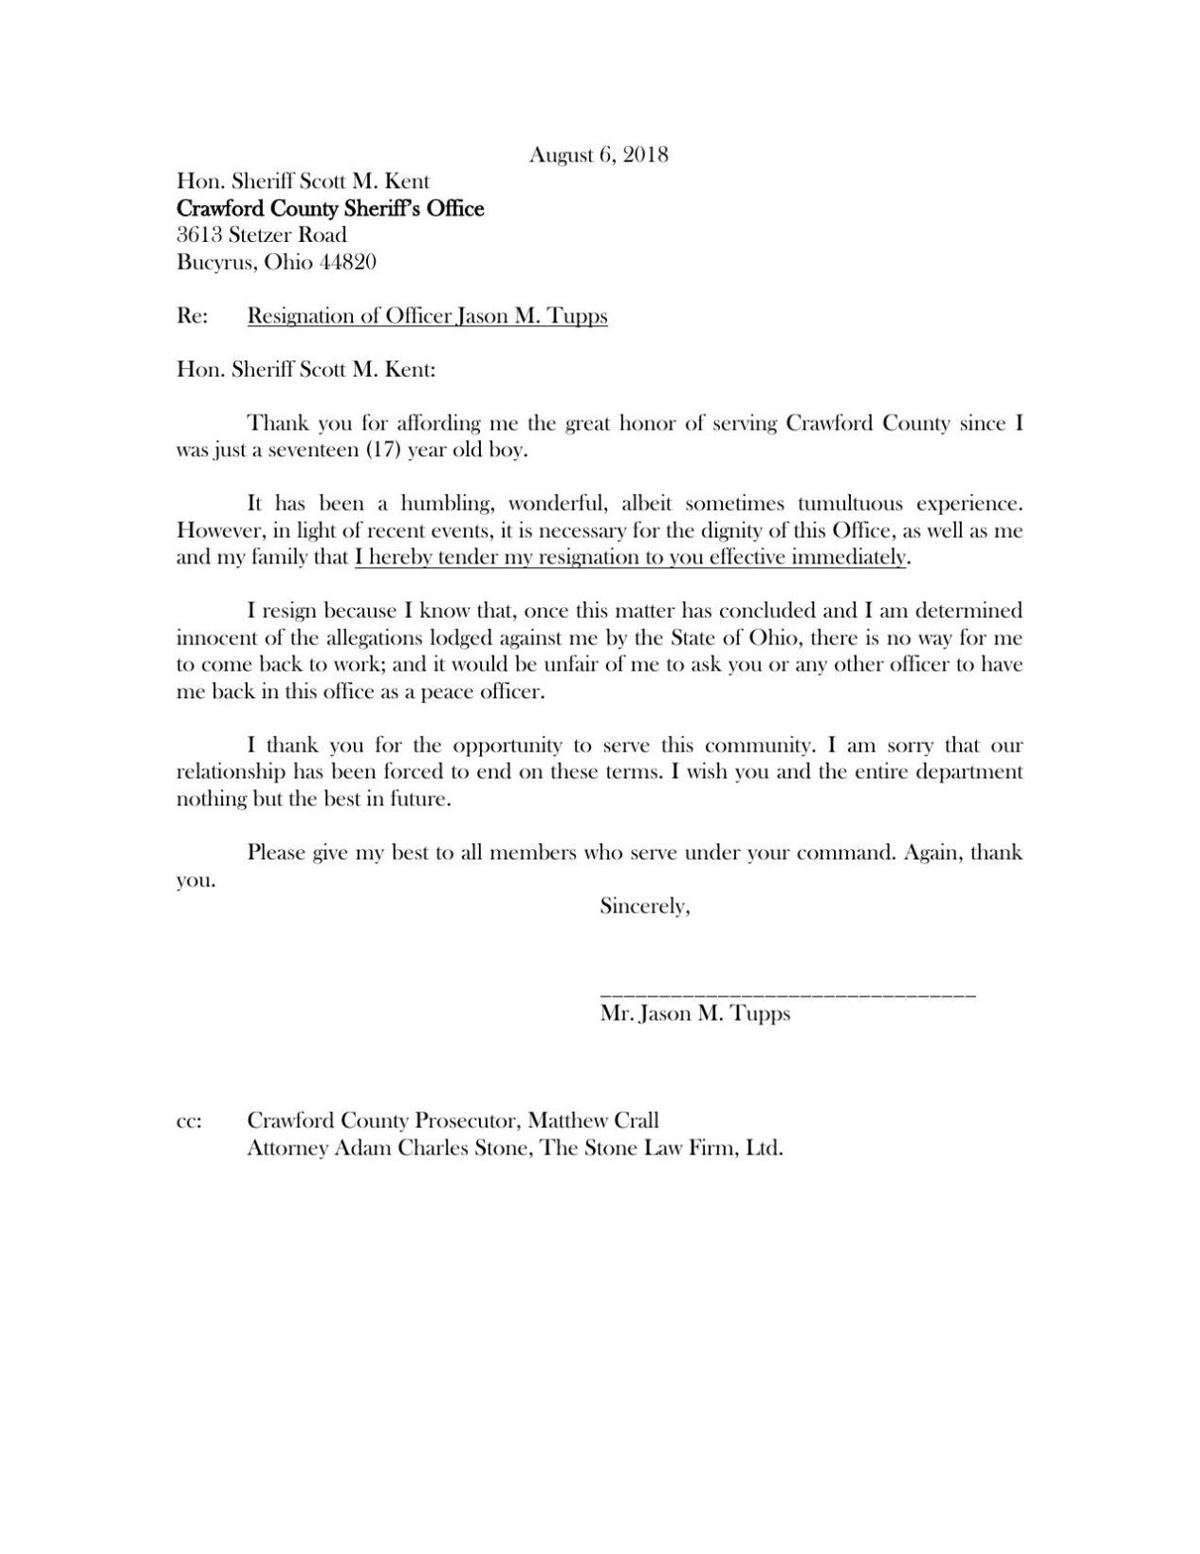 Law Firm Resignation Letter from bloximages.newyork1.vip.townnews.com